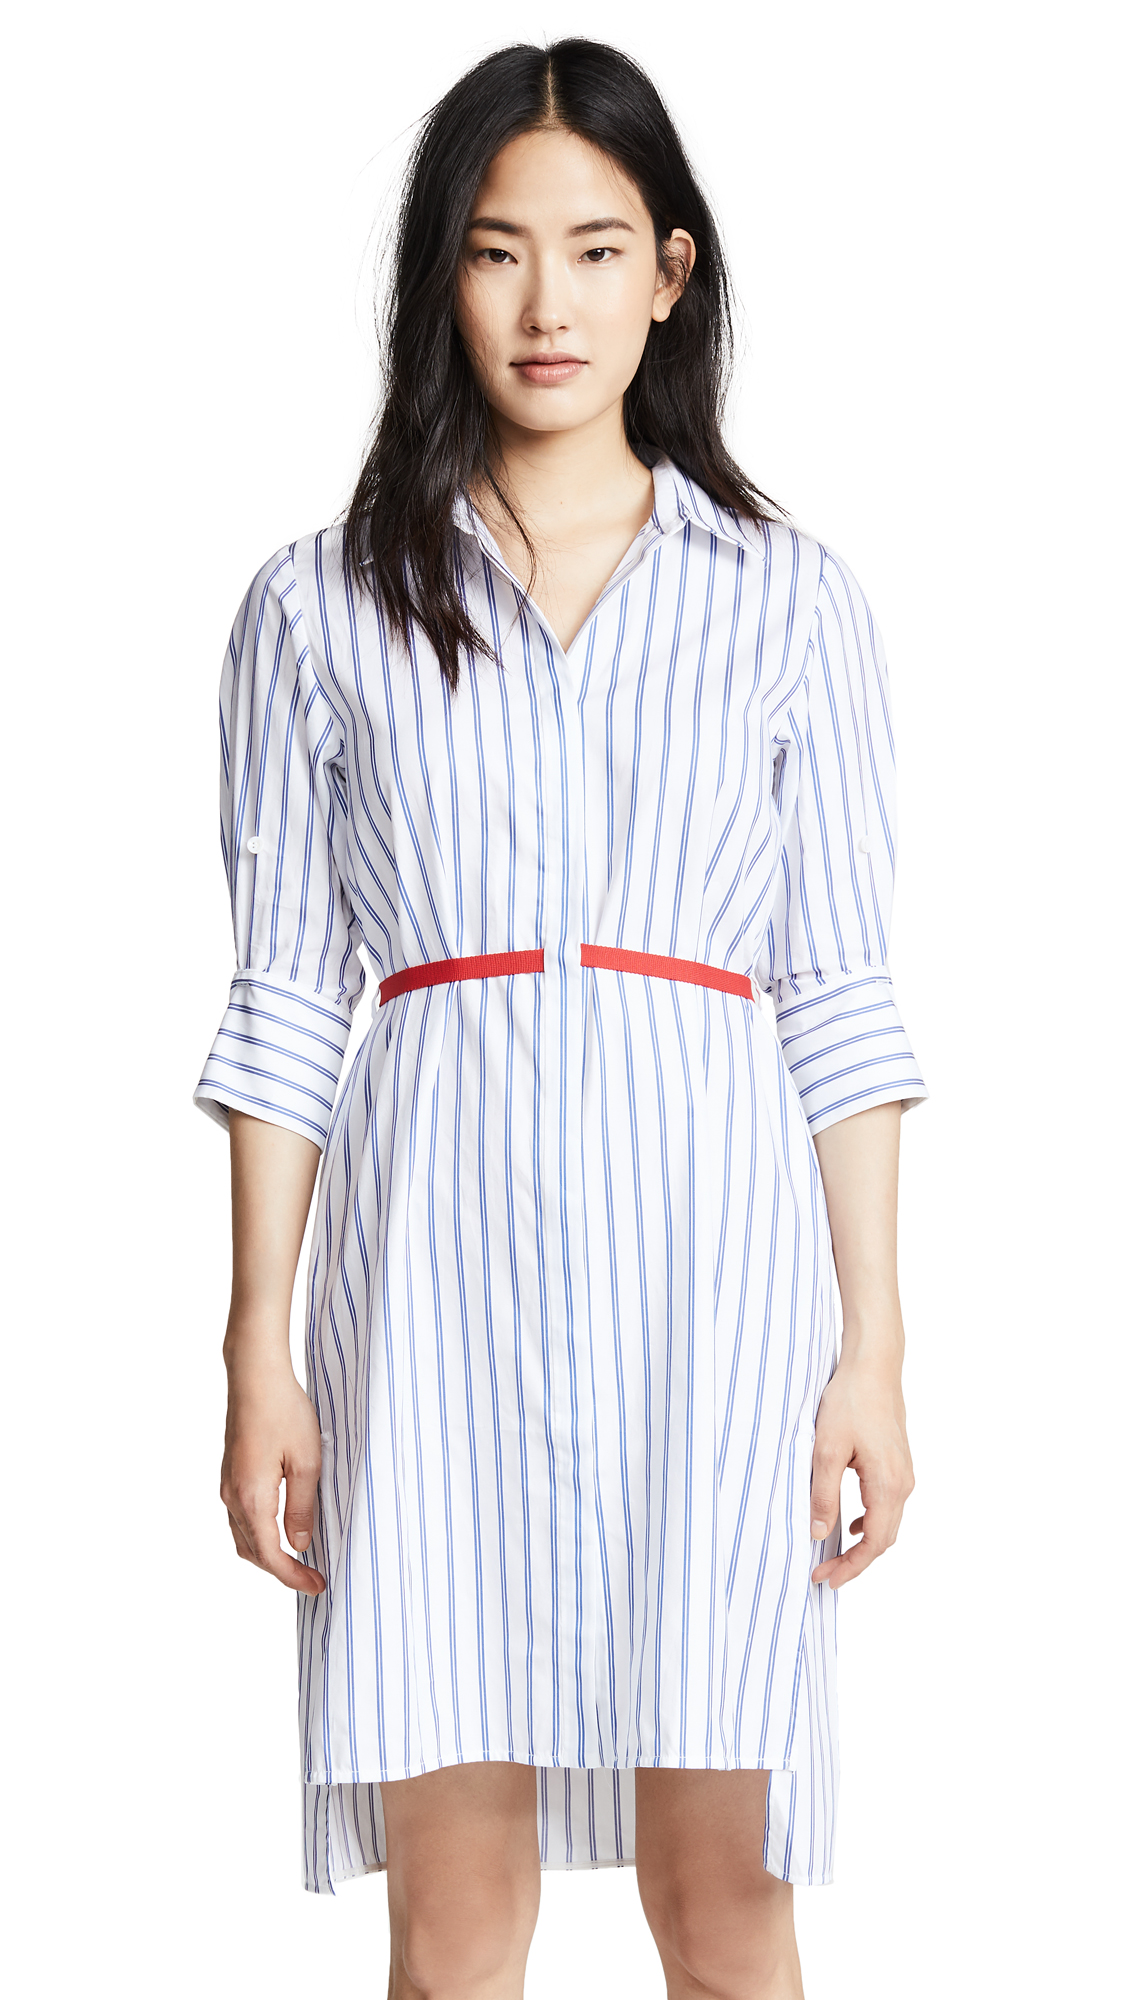 Edition10 Striped Dress with Belt In Blue/White